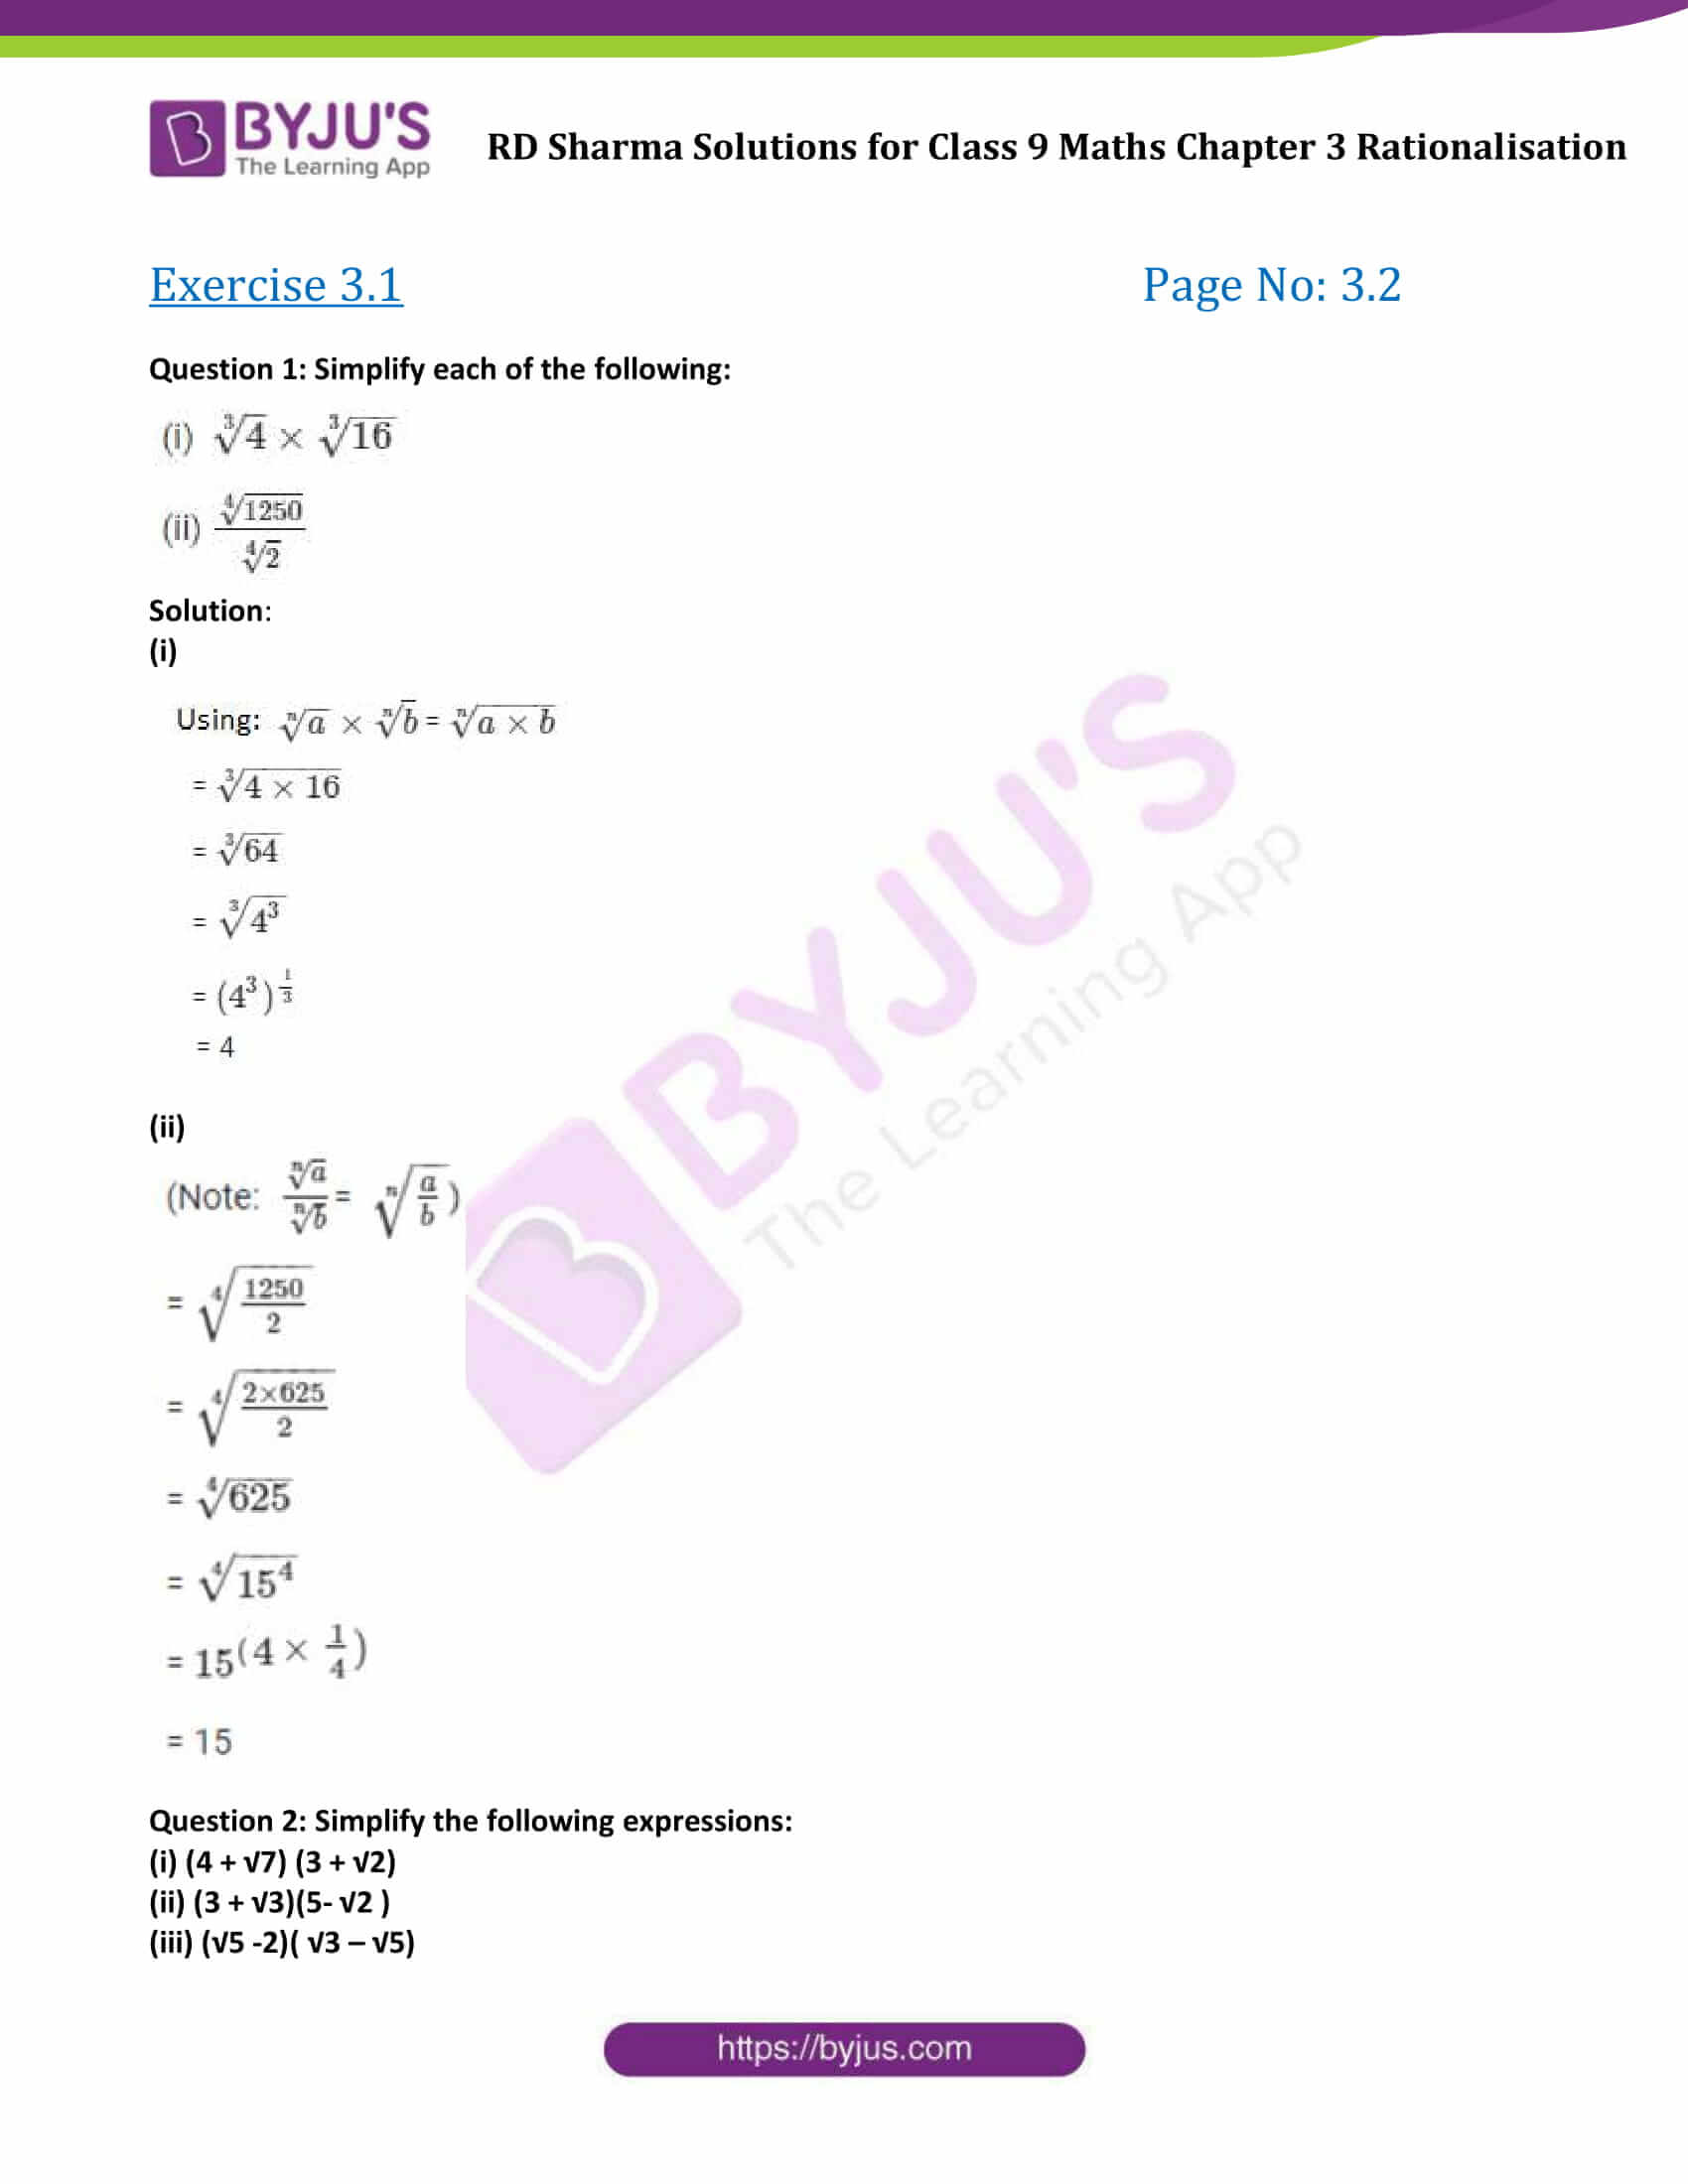 RD Sharma Solution class 9 Maths Chapter 3 Rationalisation 01